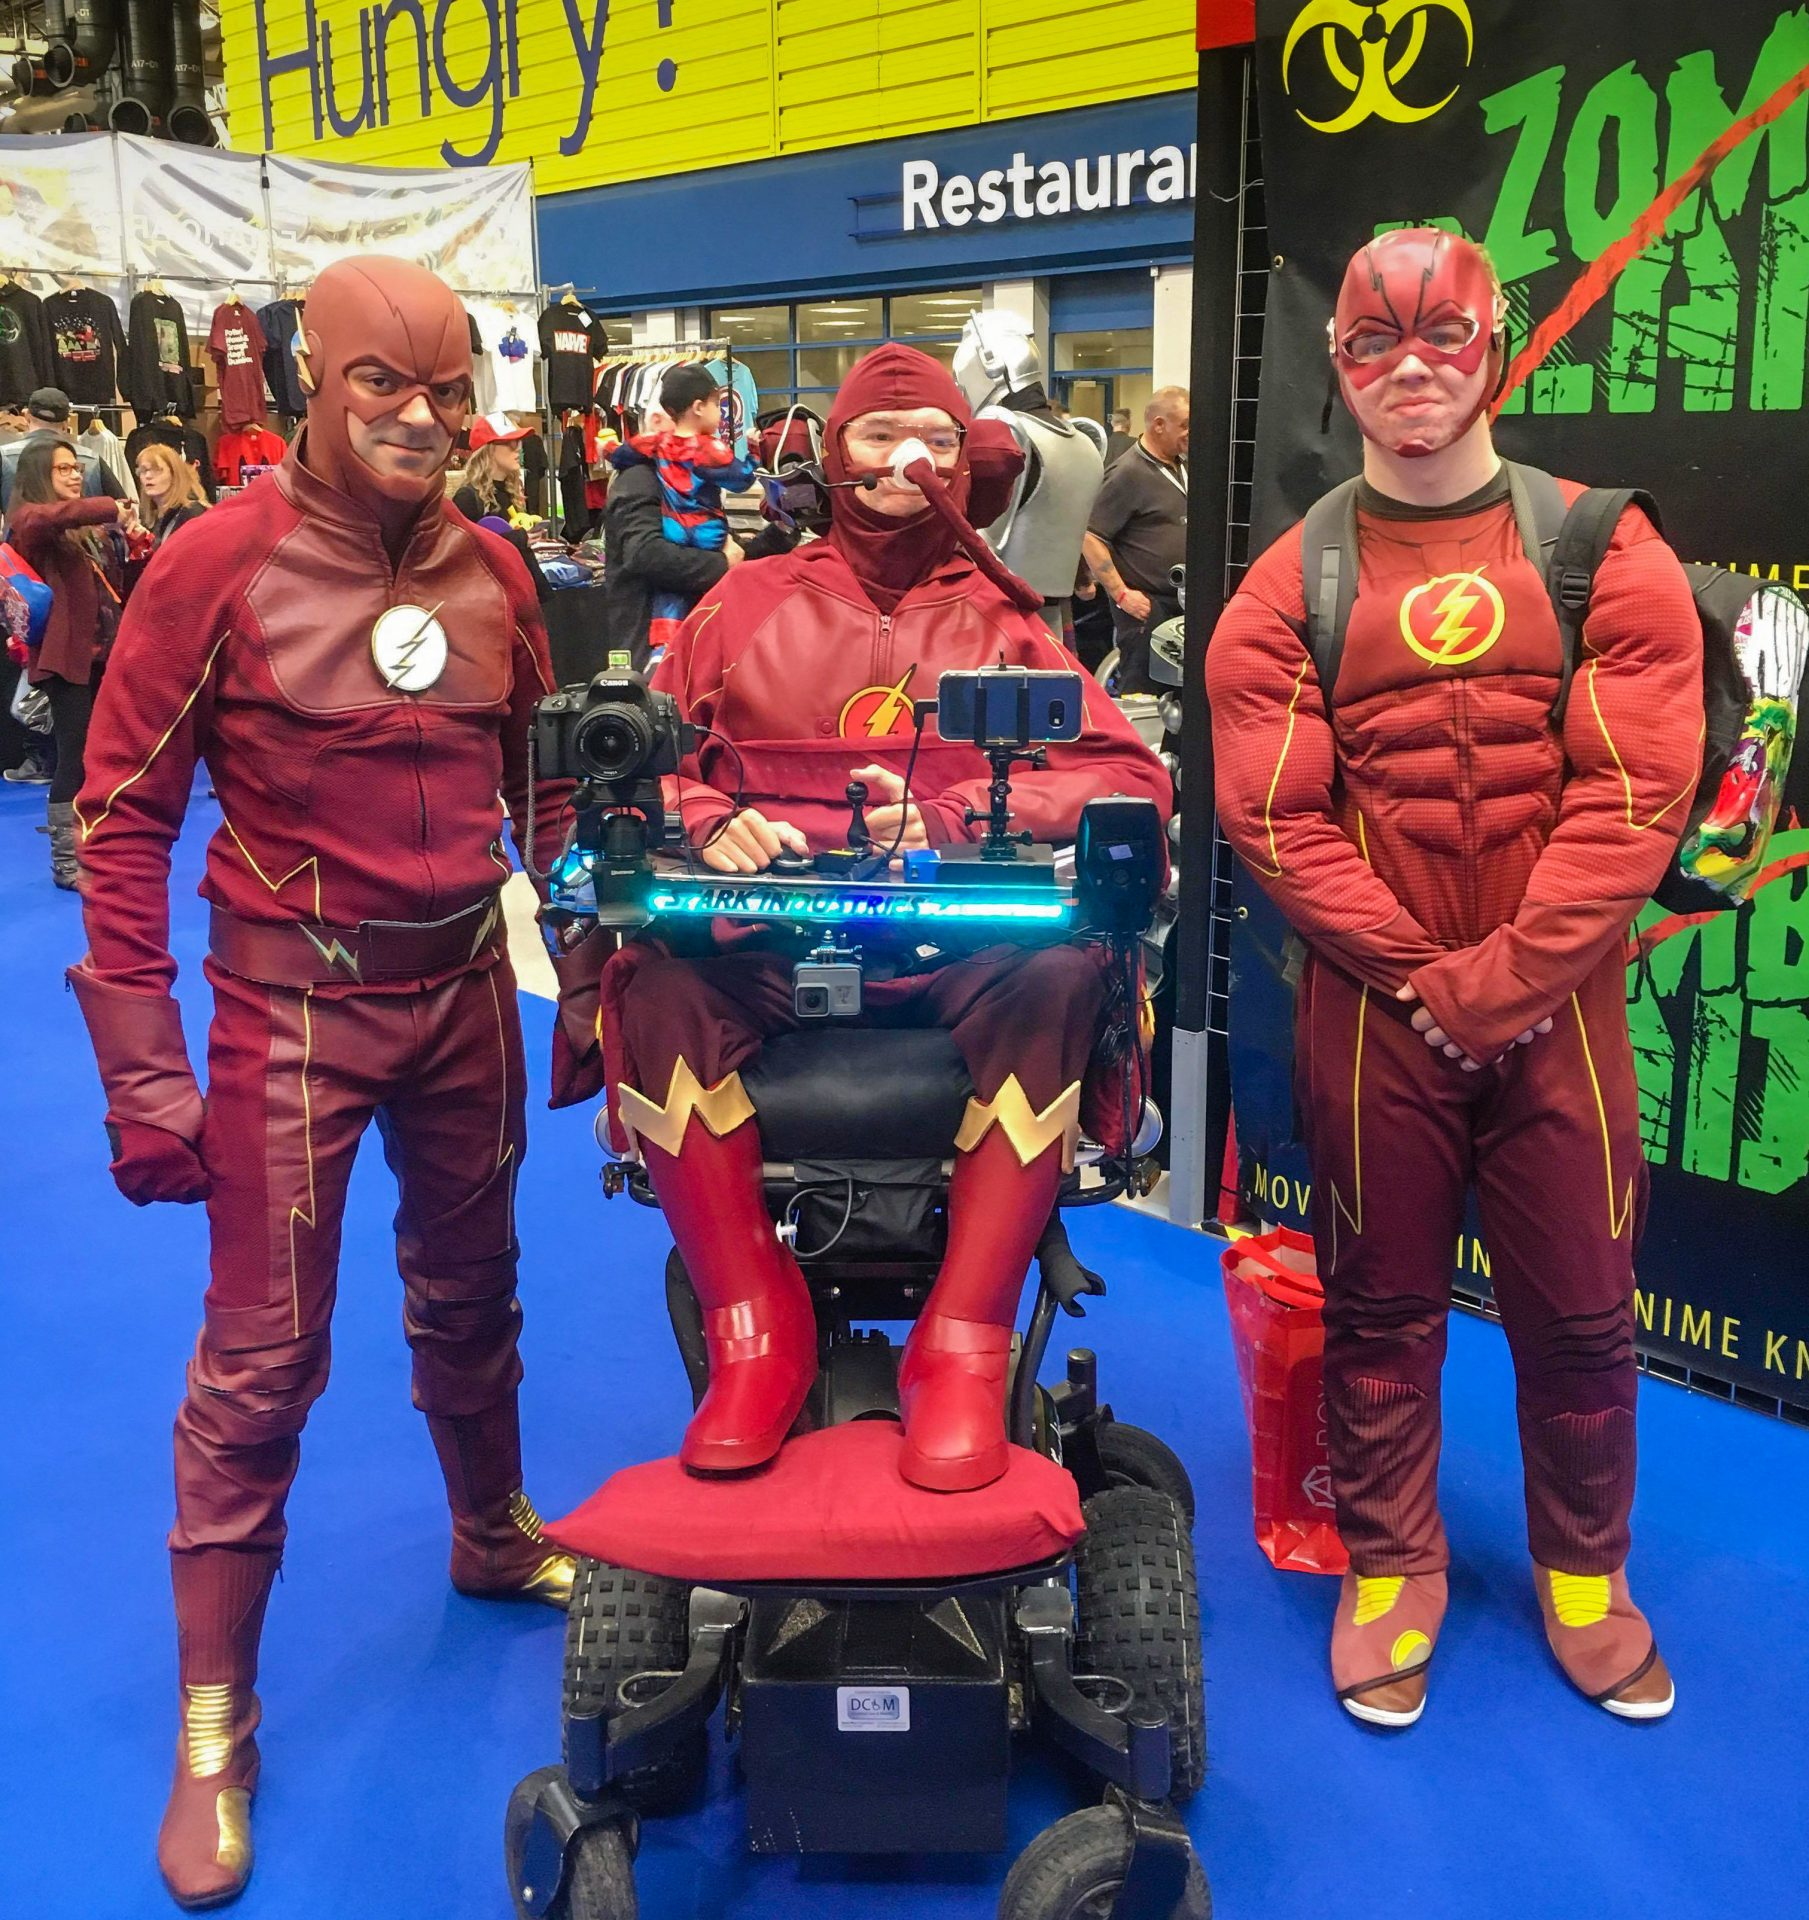 Daniel Baker dressed as the Flash with two other Flash cosplayers